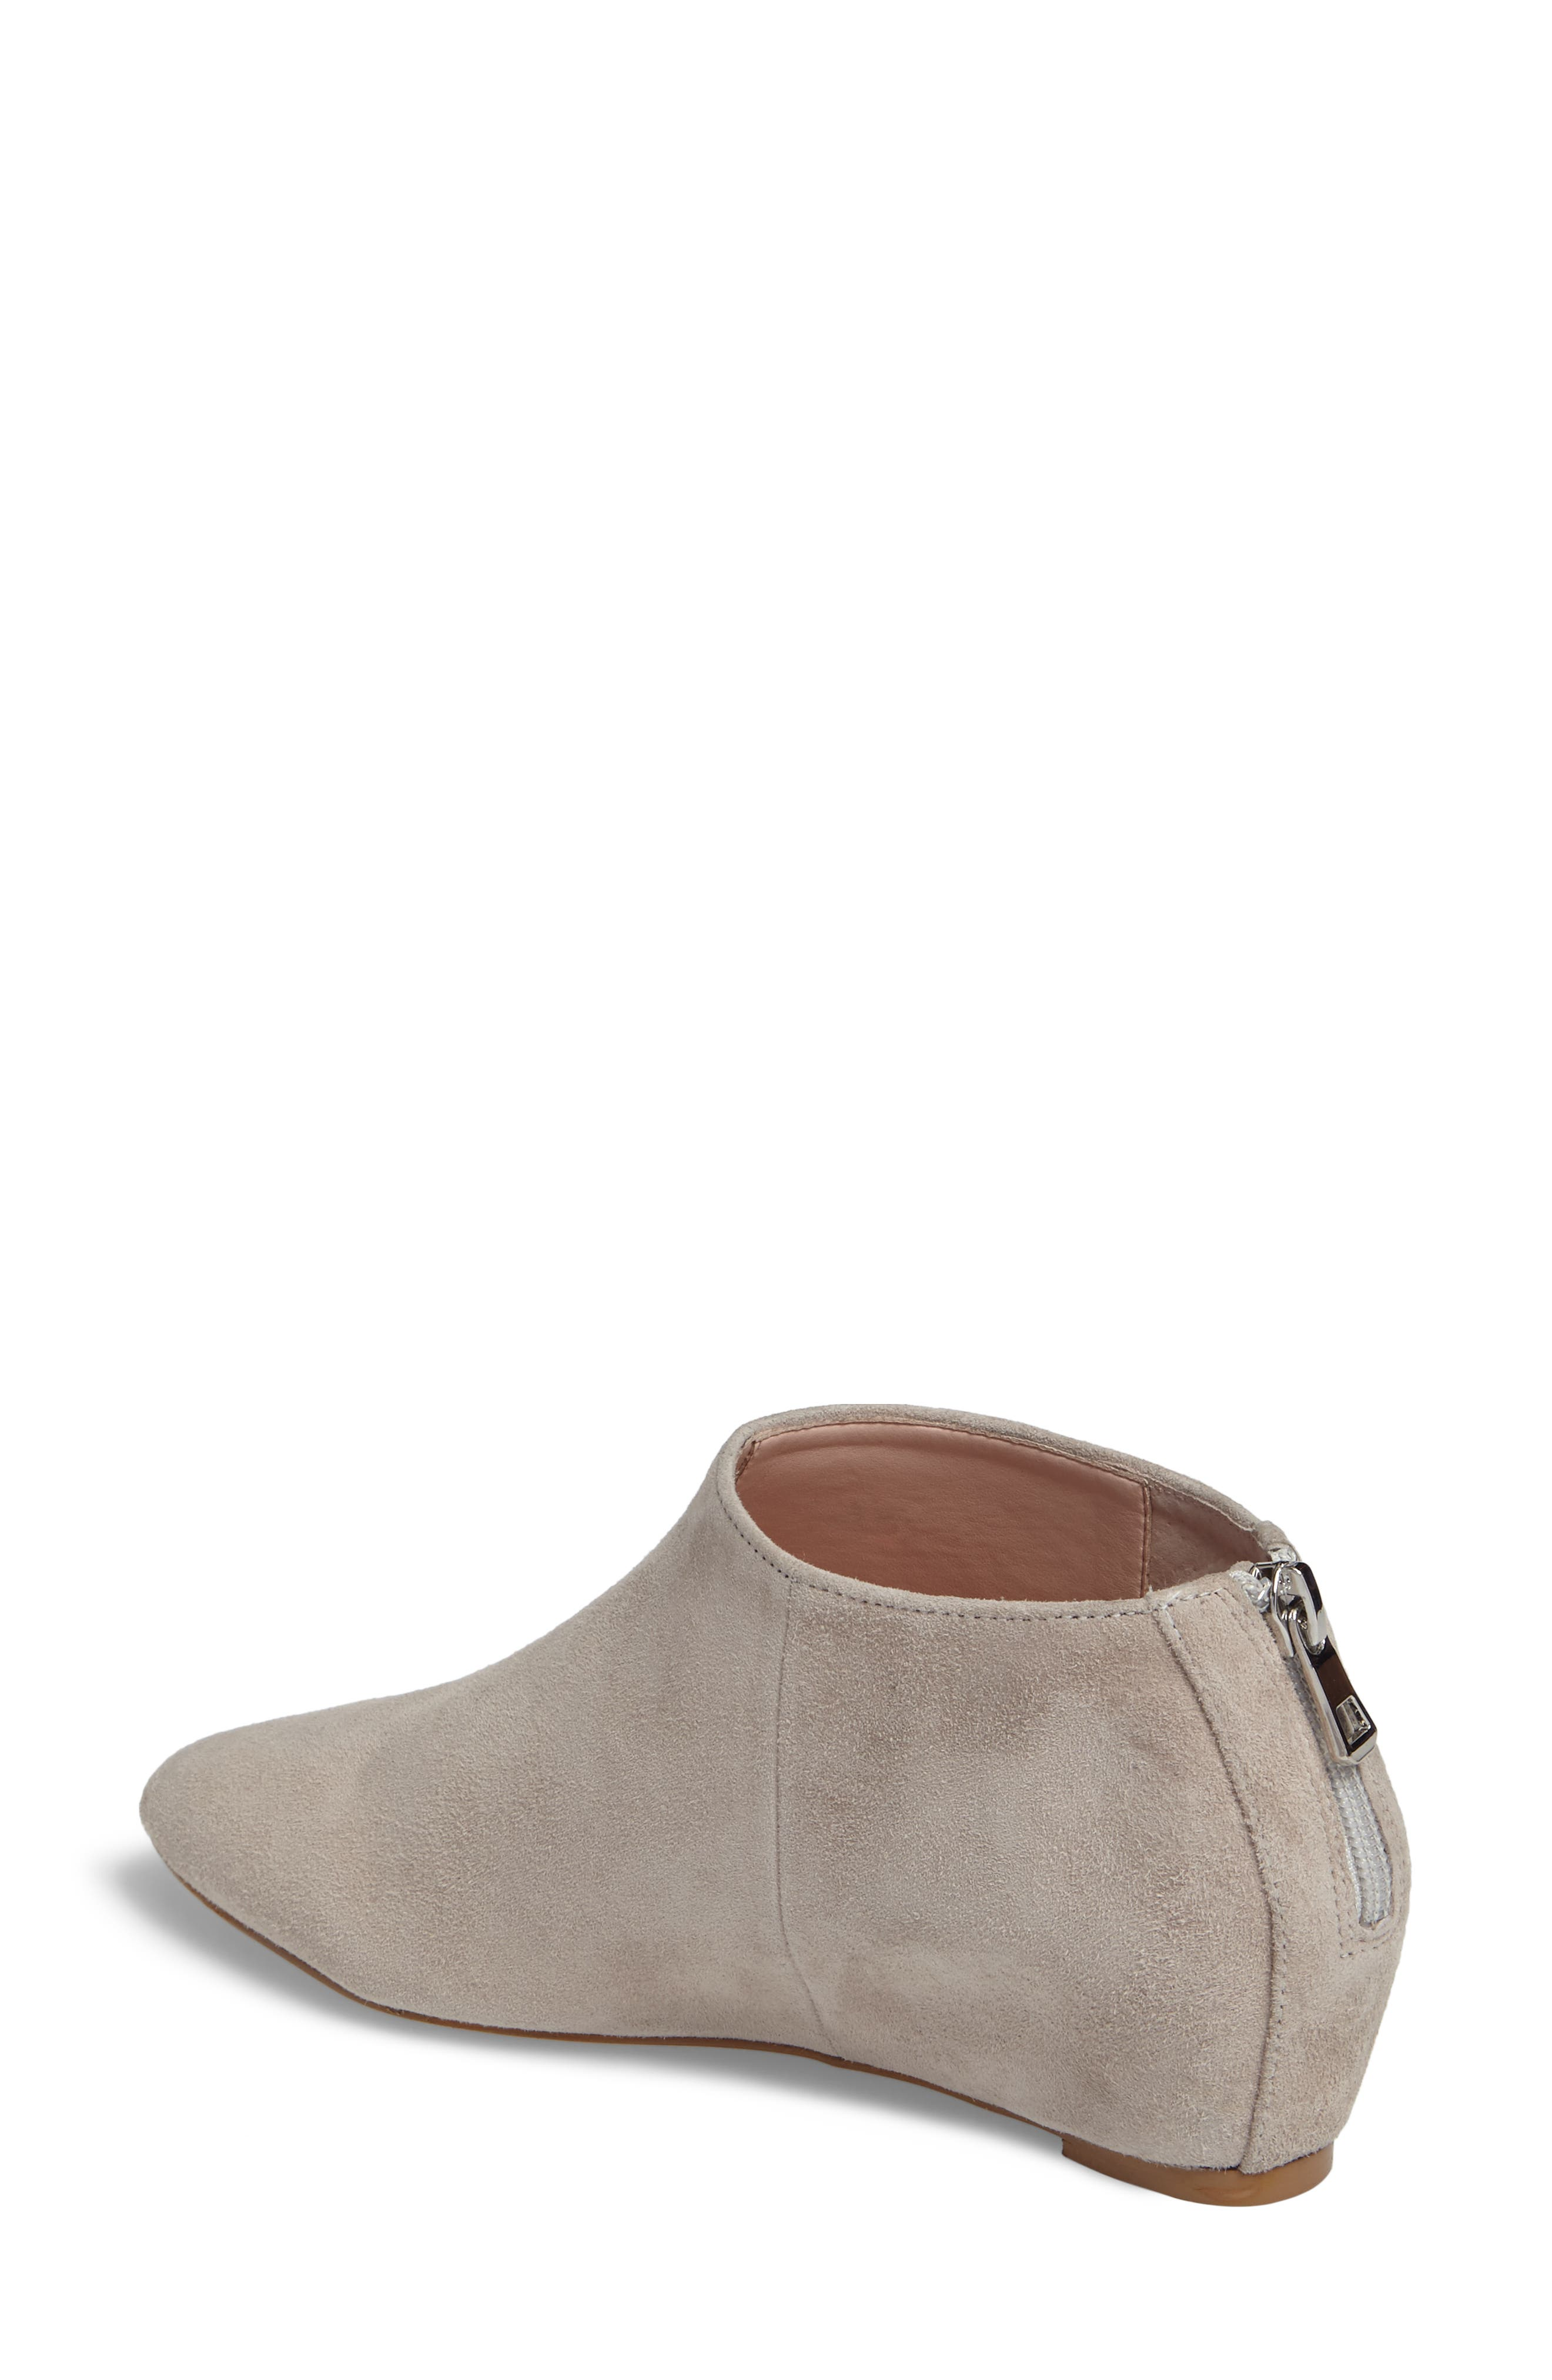 Alternate Image 2  - Aves Les Filles Beatrice Ankle Boot (Women)